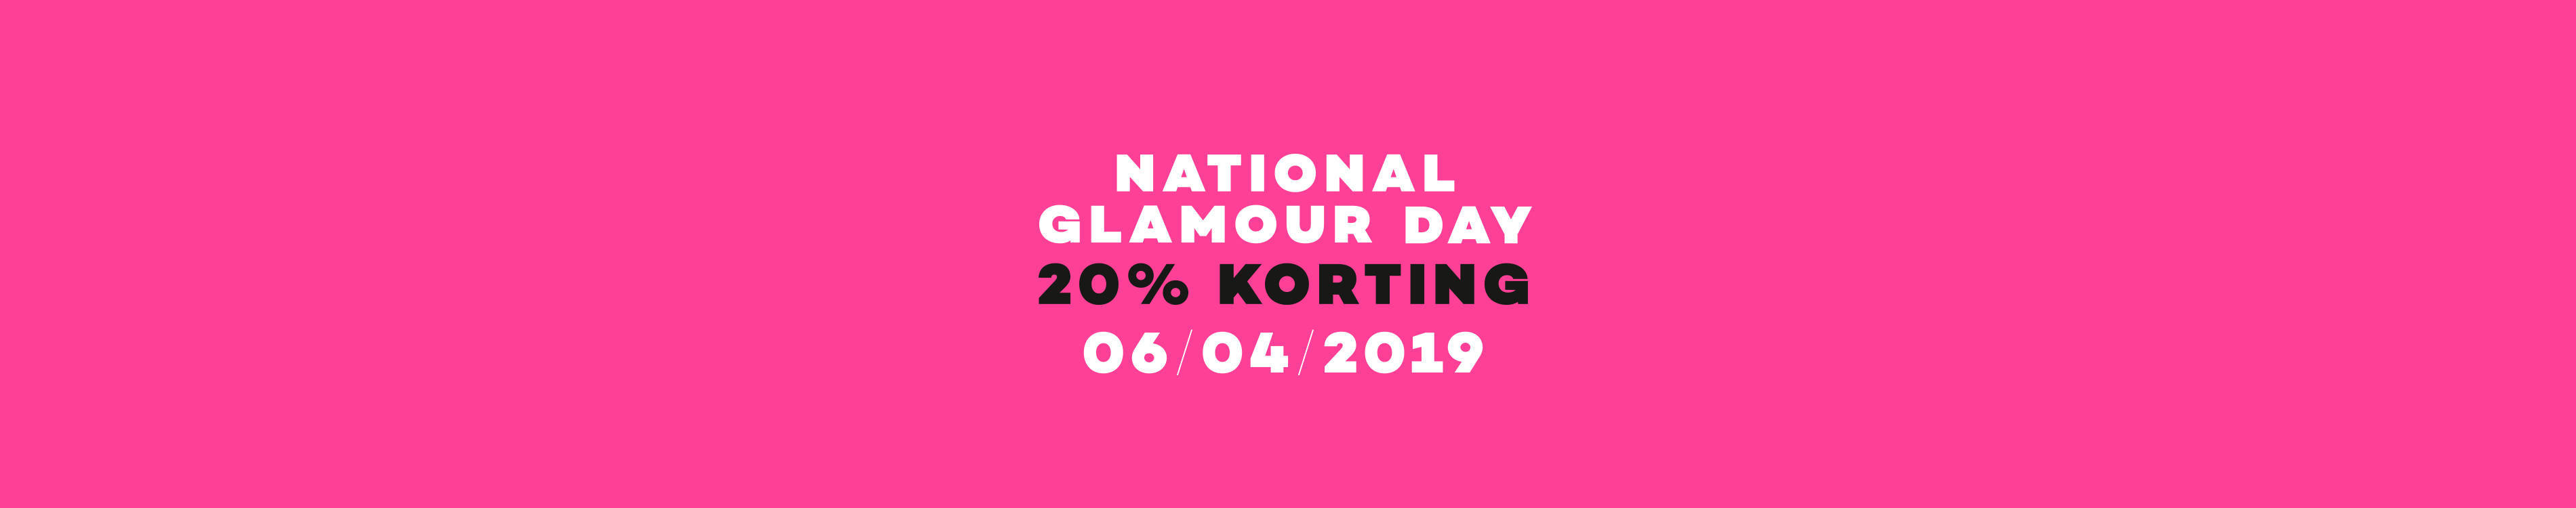 5a09847fb19 National Glamour Day - Fashionstores Online